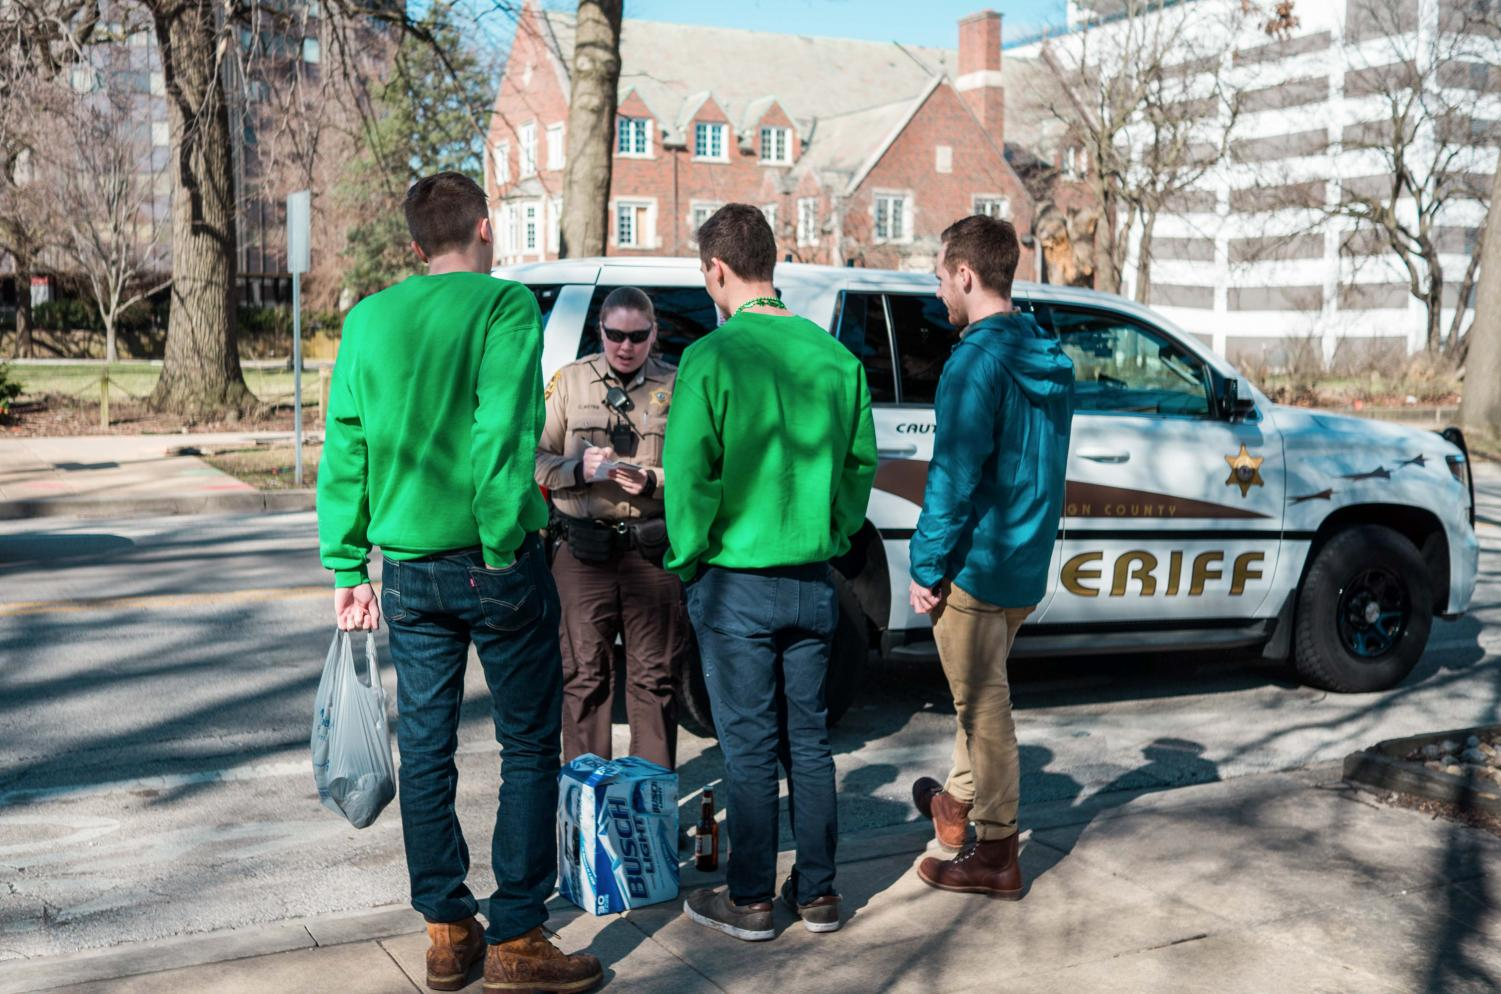 sabrina yan The Daily Illini A police officer issues tickets to three people on Fifth Street in the morning on Unofficial St. Patrick's Day, March 3, 2017. The mayors of Champaign and Urbana are placing further restrictions on the holiday this year.